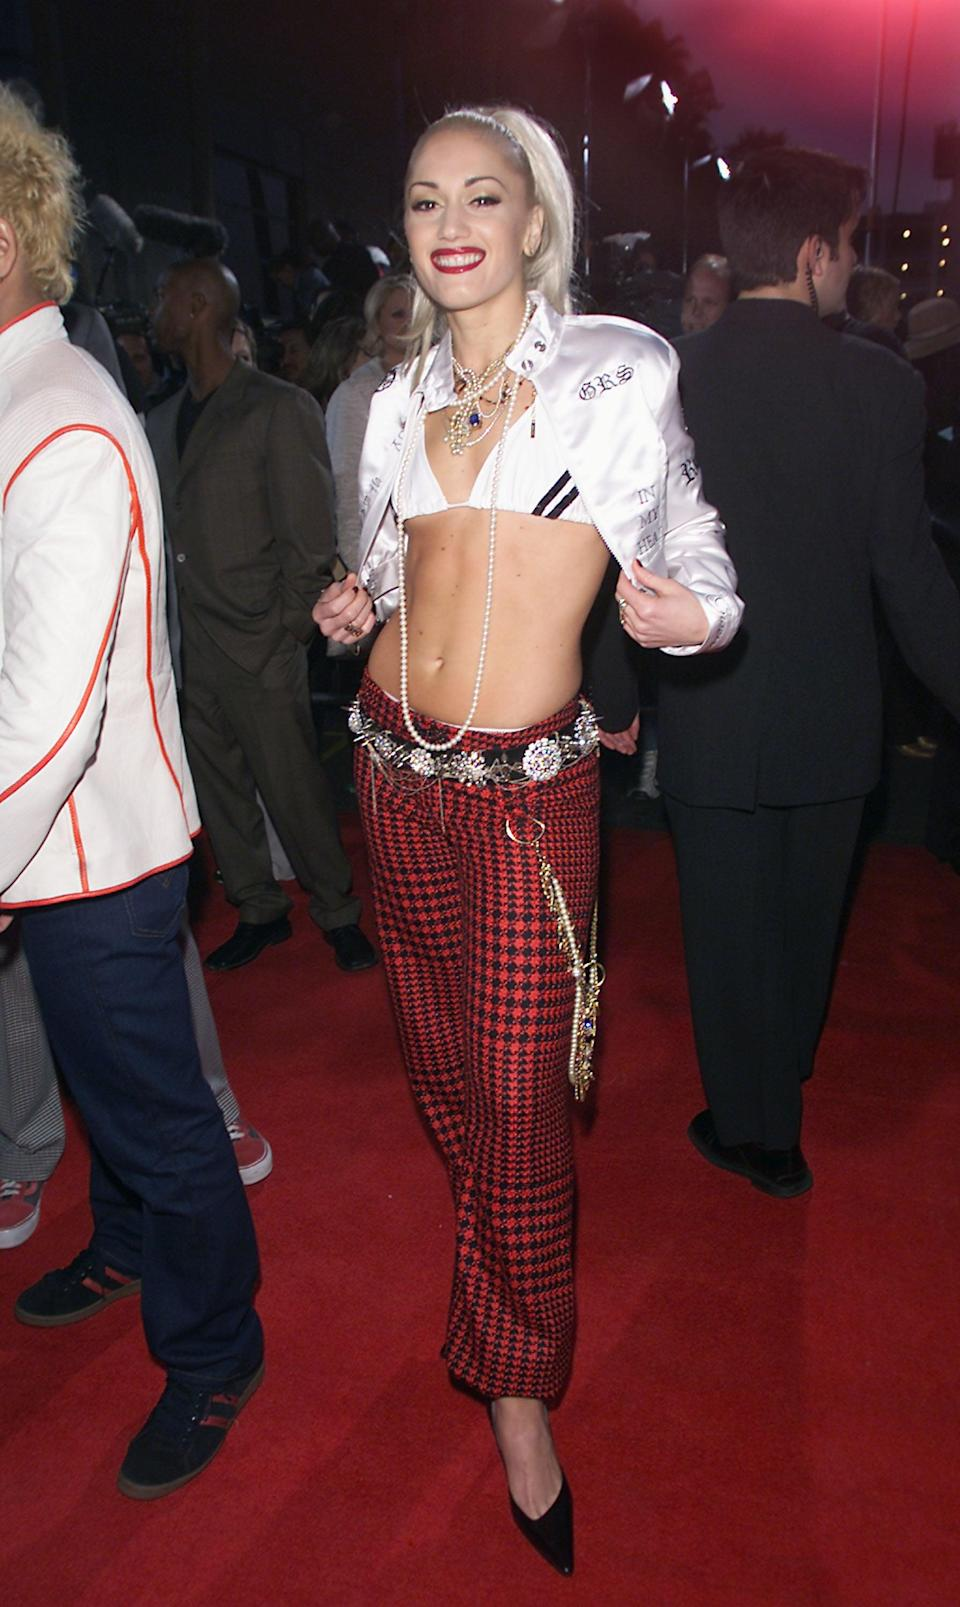 <p>At the 2001 Billboard Music Awards wearing a white bikini top, cropped jacket, and plaid pants.</p>